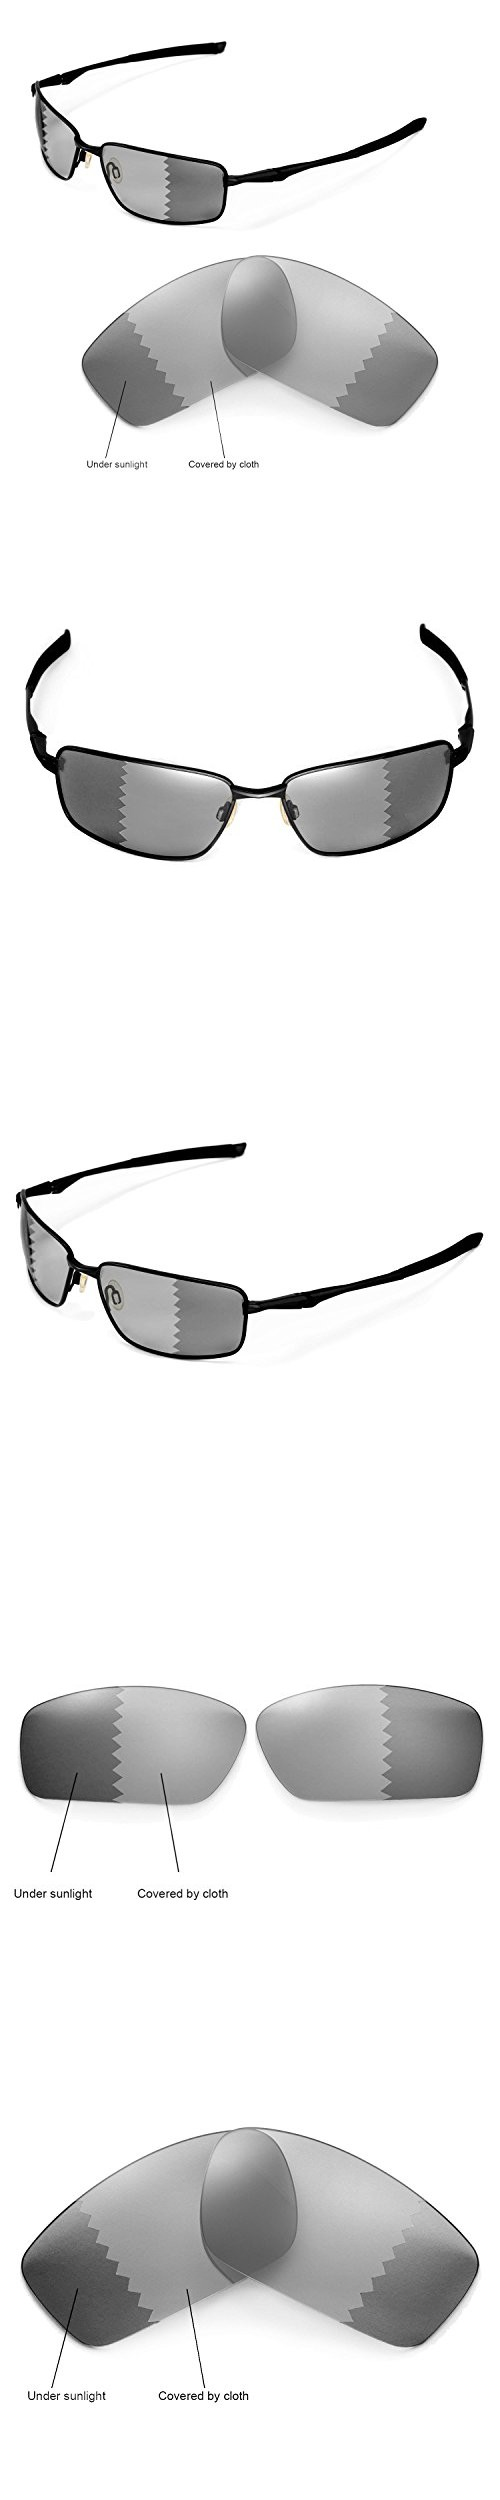 80e406a409e0f Walleva Replacement Lenses for Oakley Splinter Sunglasses - Multiple  Options Available (Transition photochromic -